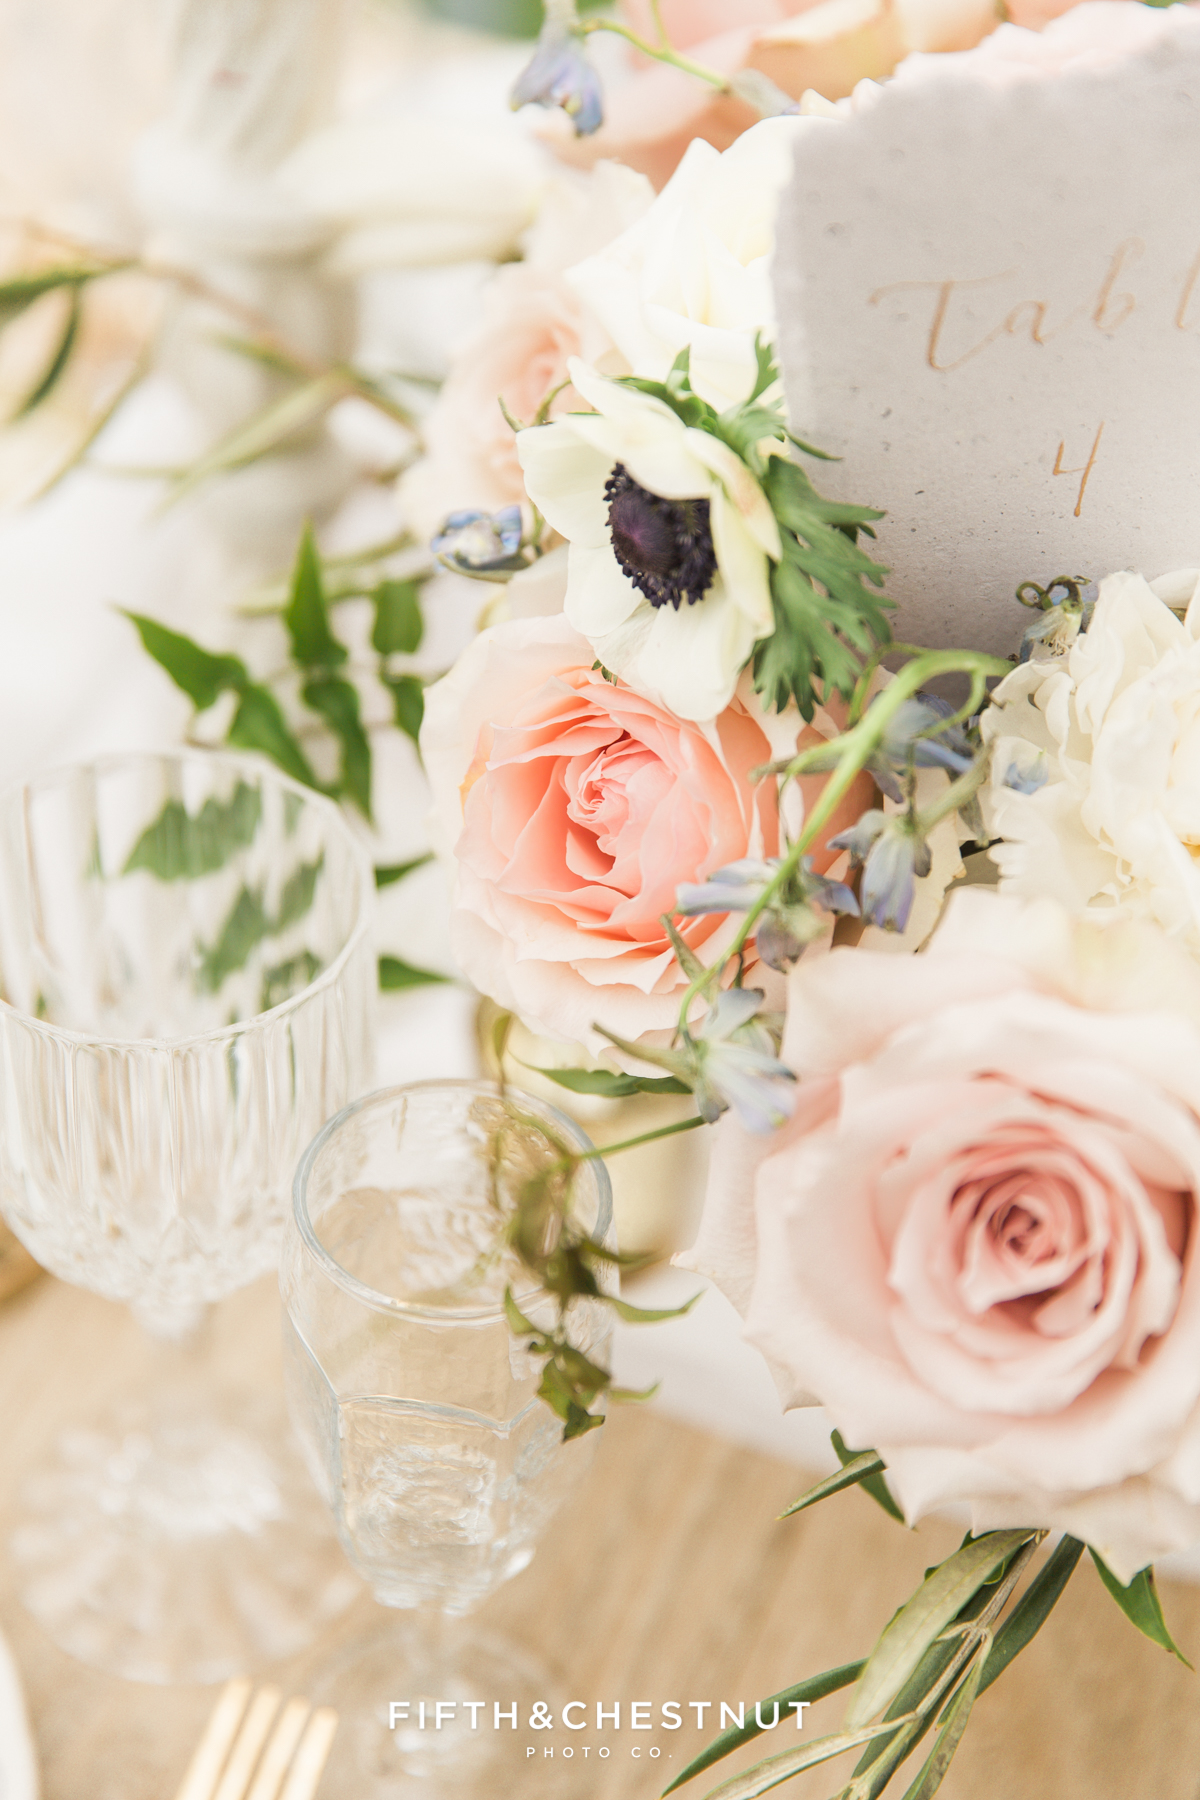 Up close detail of beautiful garden roses and anenome flowers in a Dusty Blue Private Estate Country French Wedding Styled Shoot centerpiece